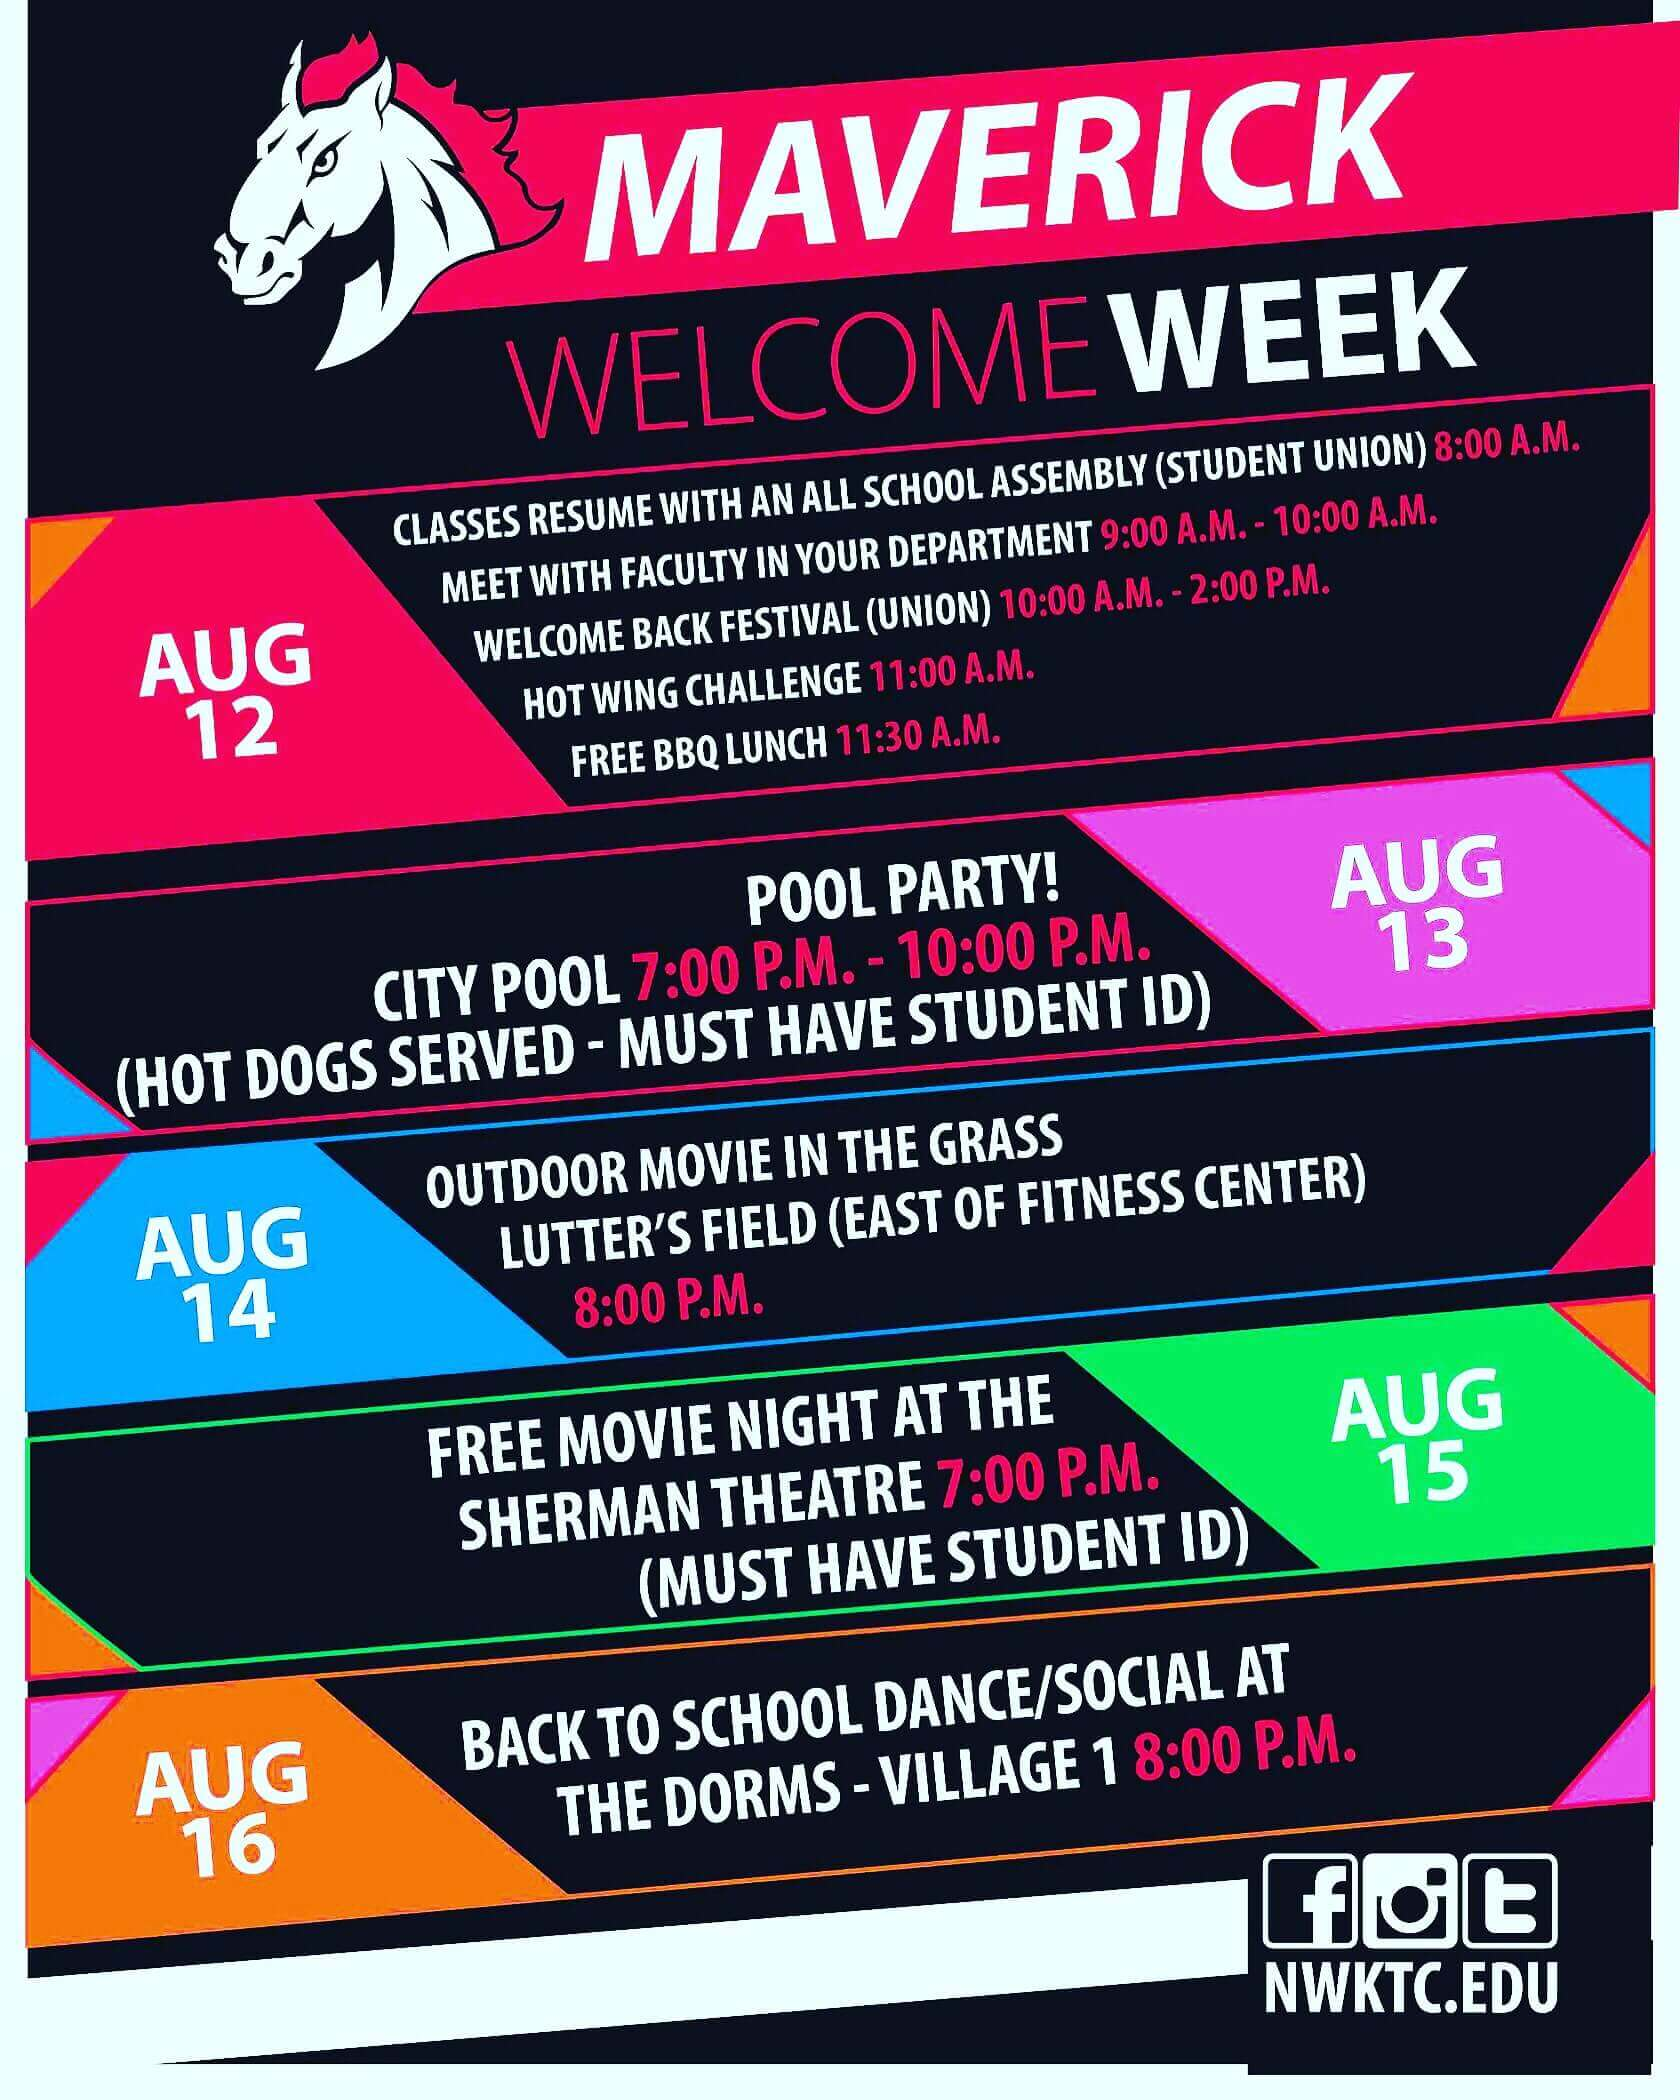 Maverick Welcome Week Poster